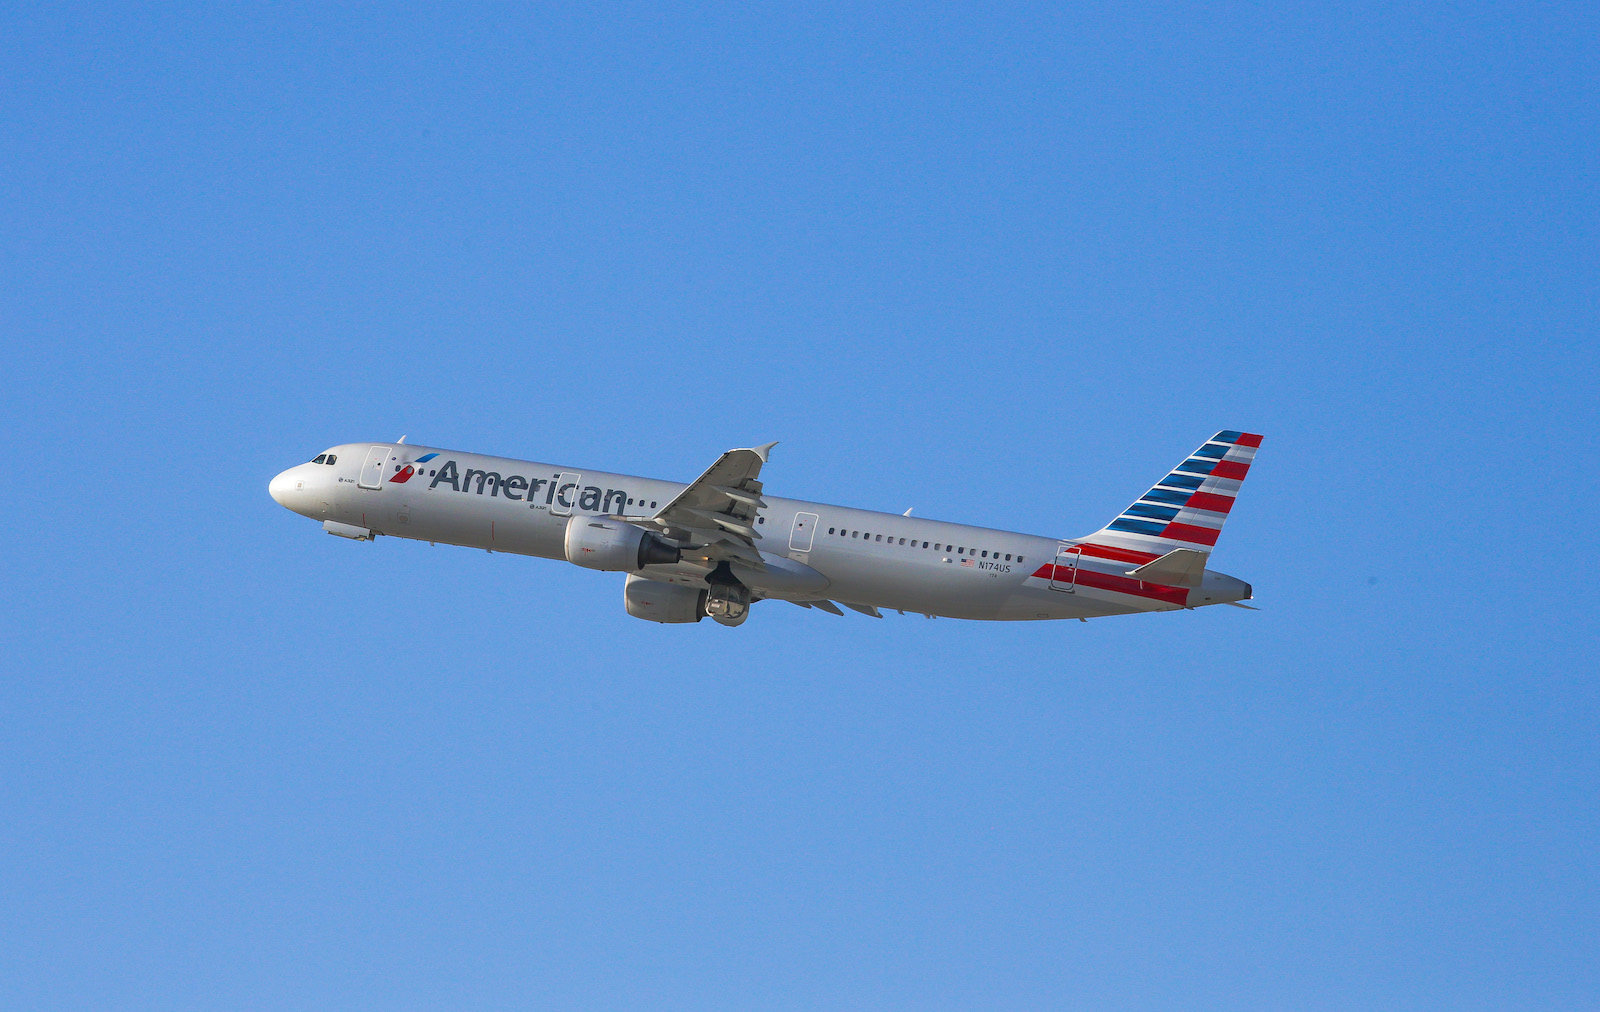 LOS ANGELES, CA - OCTOBER 03: American Airlines Airbus A321 taking off from LAX on October 03, 2016 in Los Angeles, California.  (Photo by FG/Bauer-Griffin/GC Images)